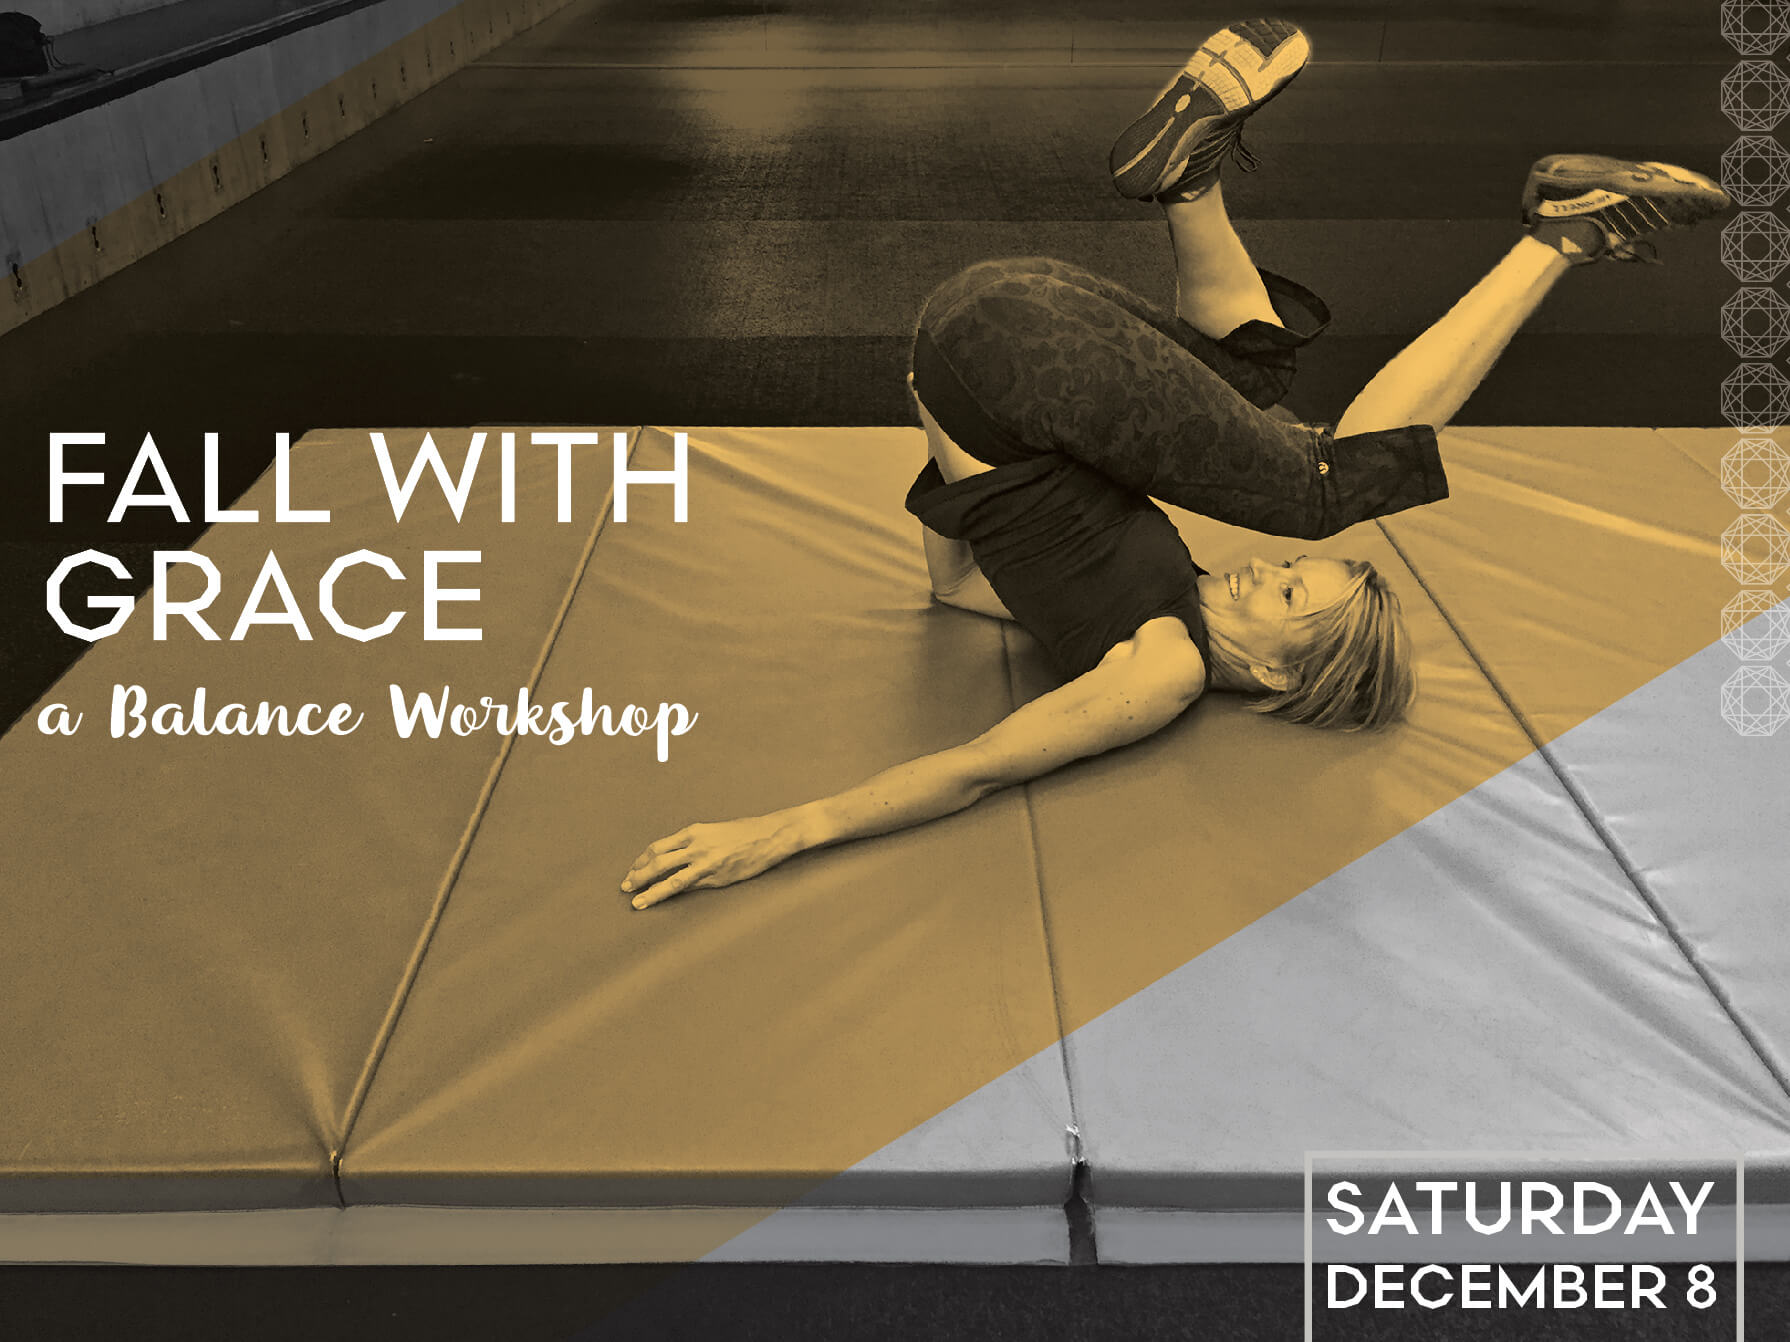 Fall with Grace: A Balance Workshop